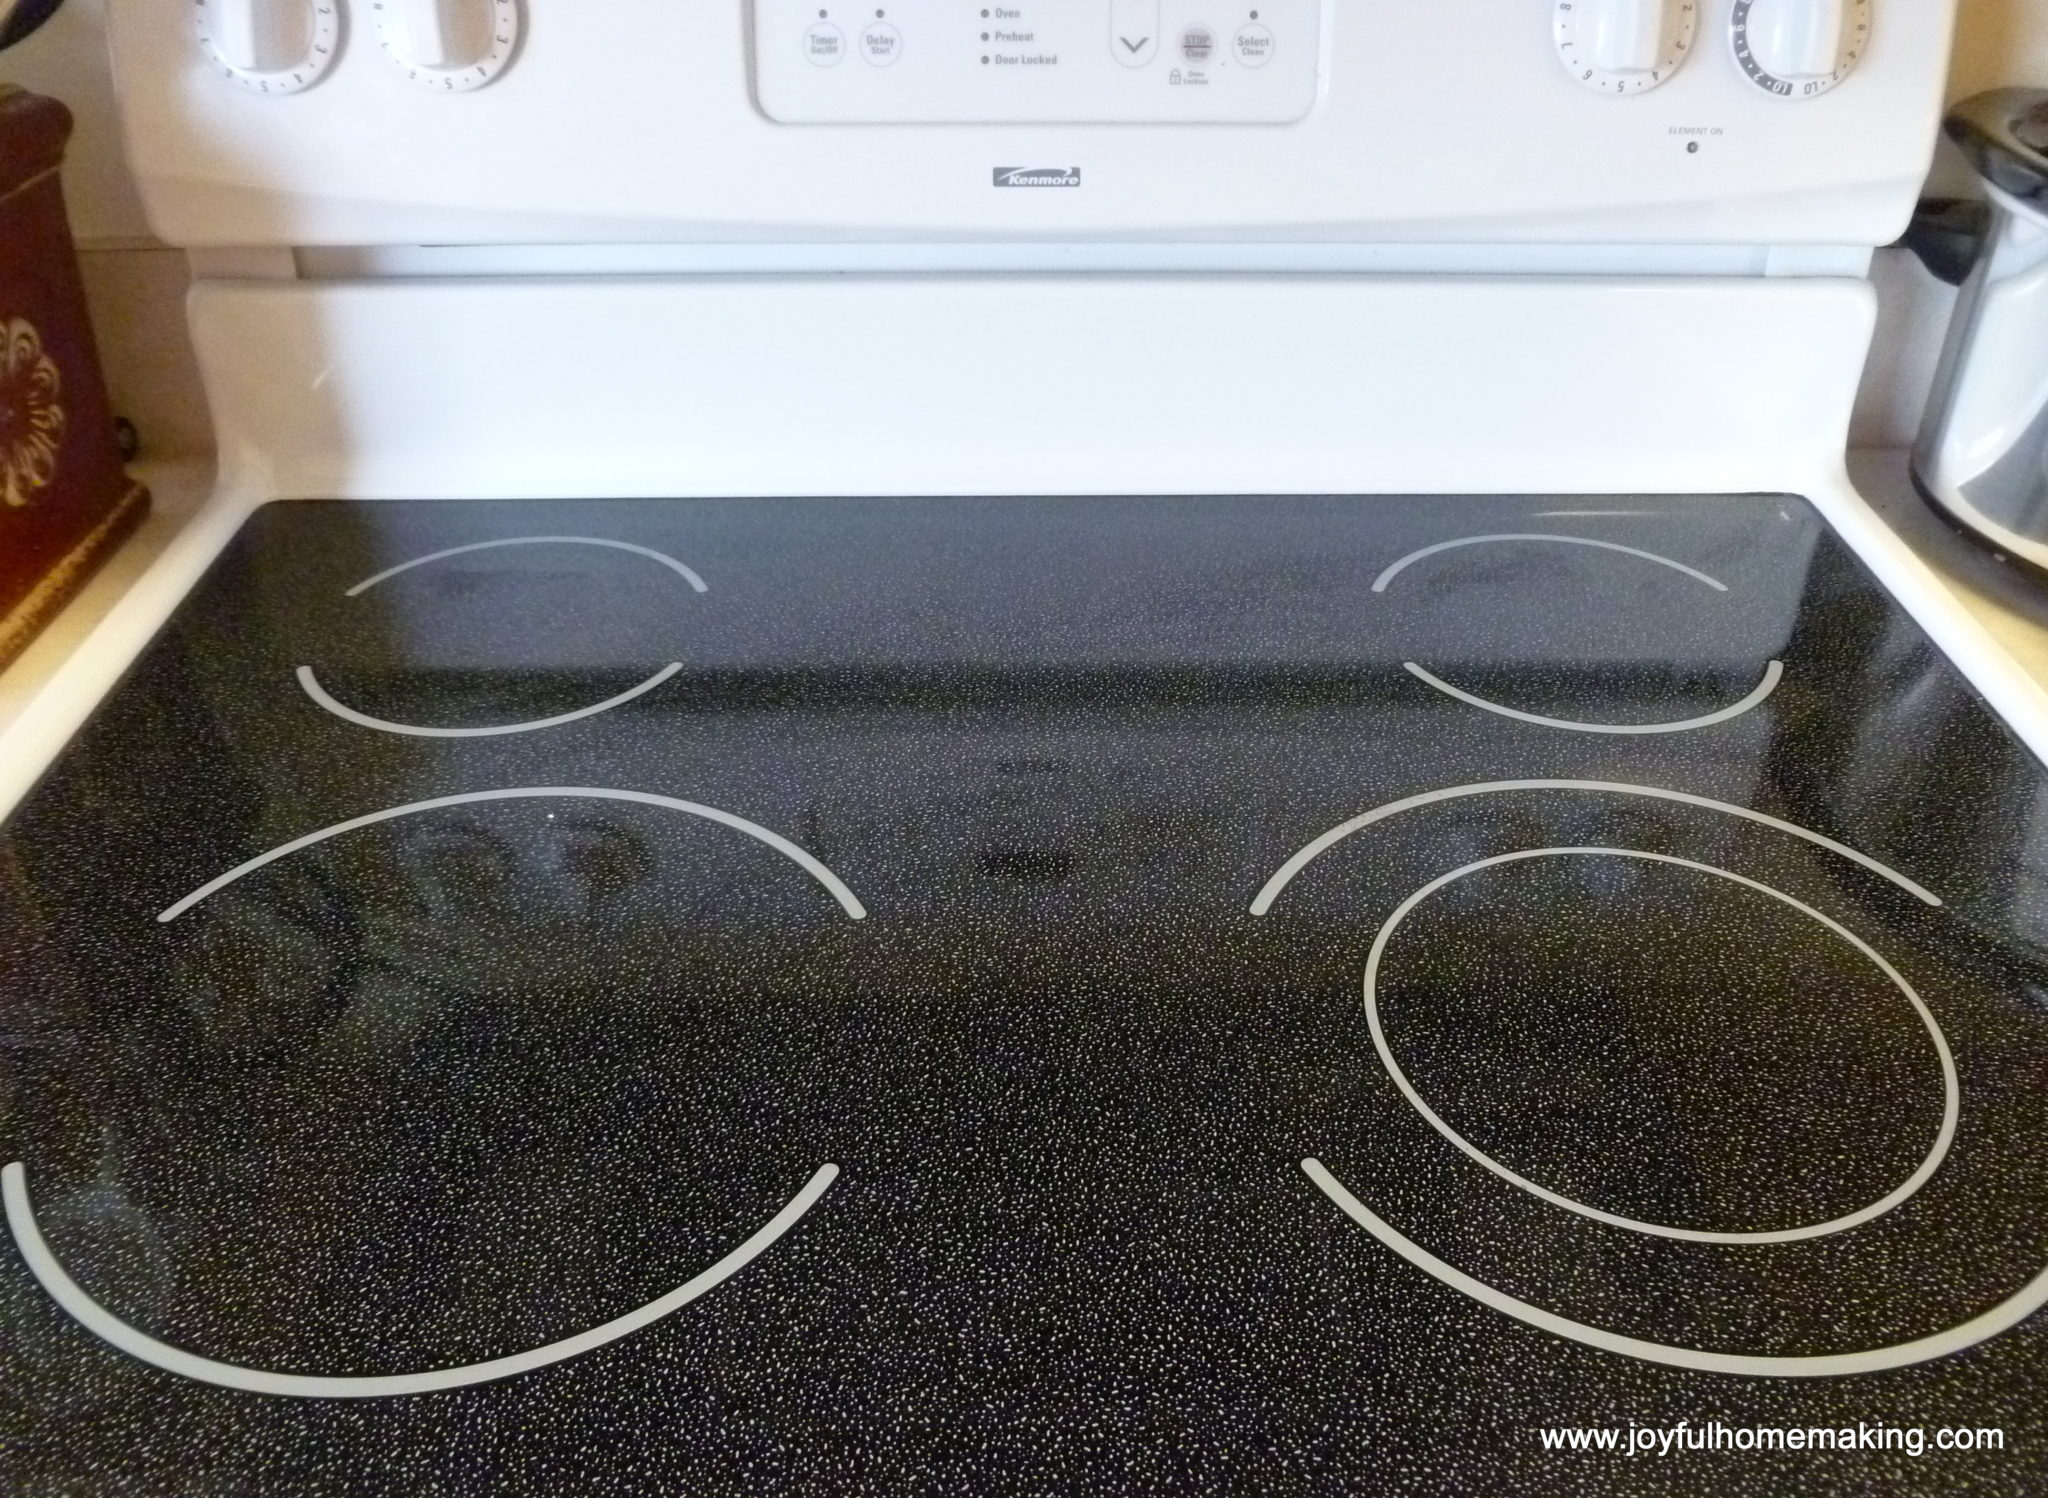 How to Clean a Stove Top Made of Glass » Joyful Homemaking